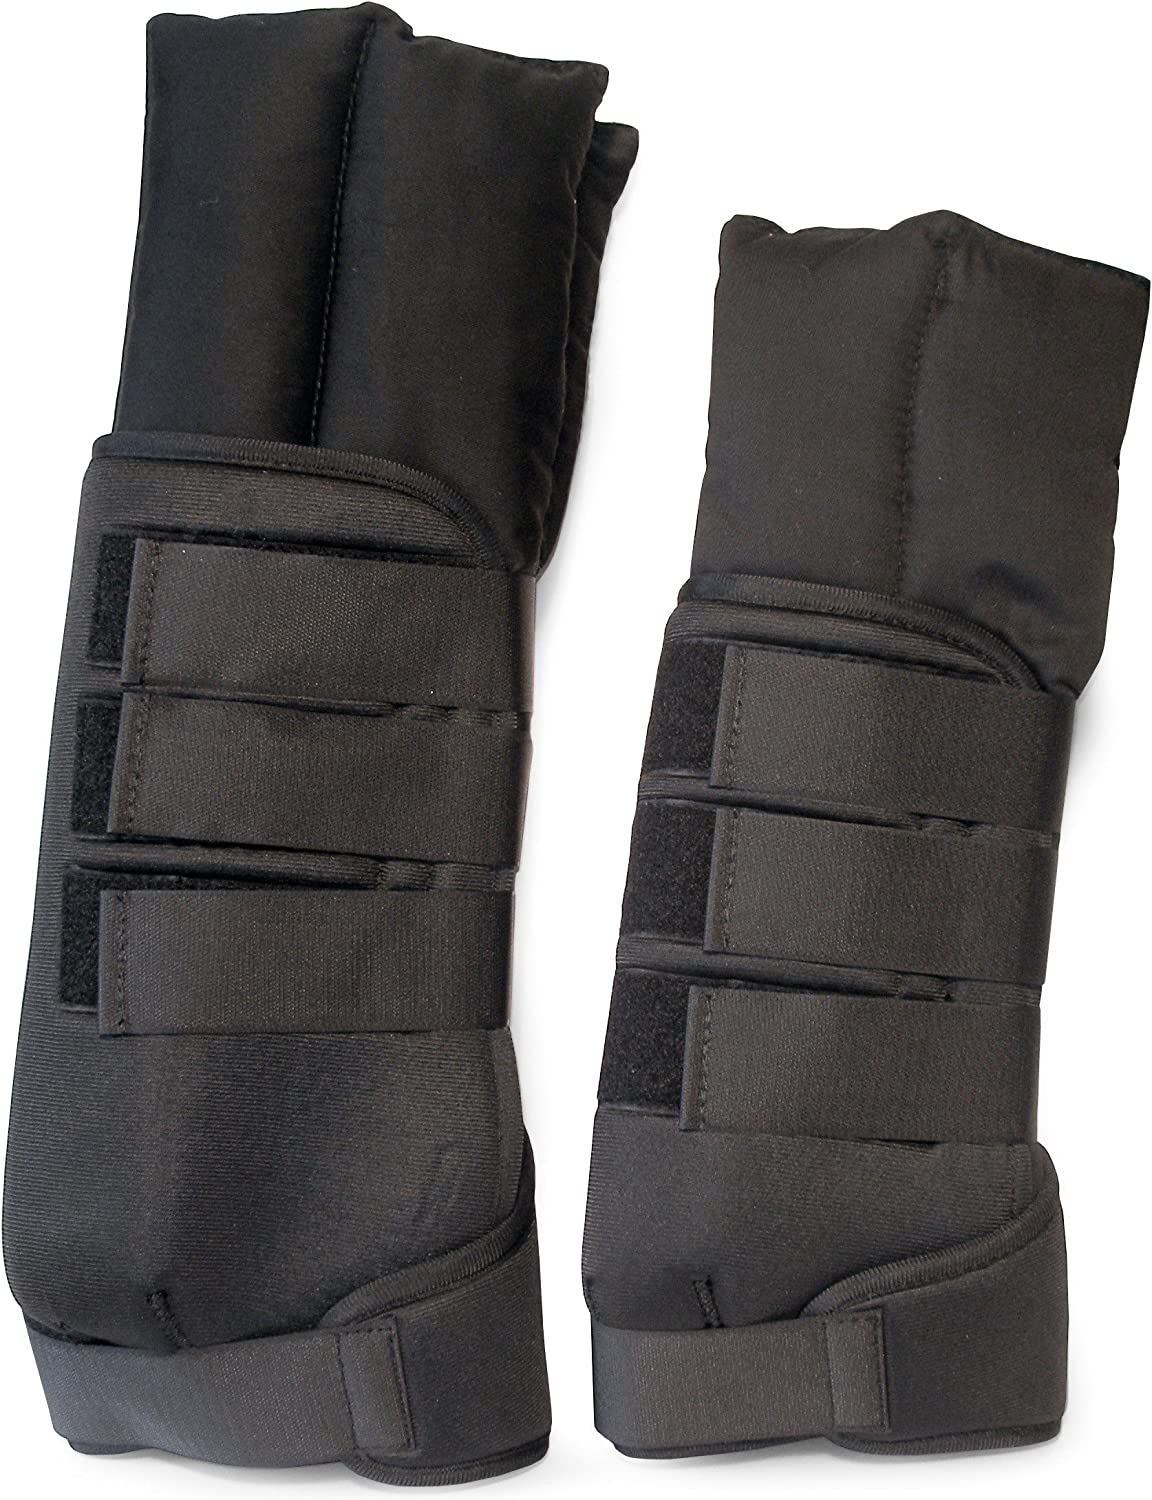 Jumpers Horse Line Unisex's JHL884966 Jhl Stable Boots Cob 4 Pack, Clear, Regular